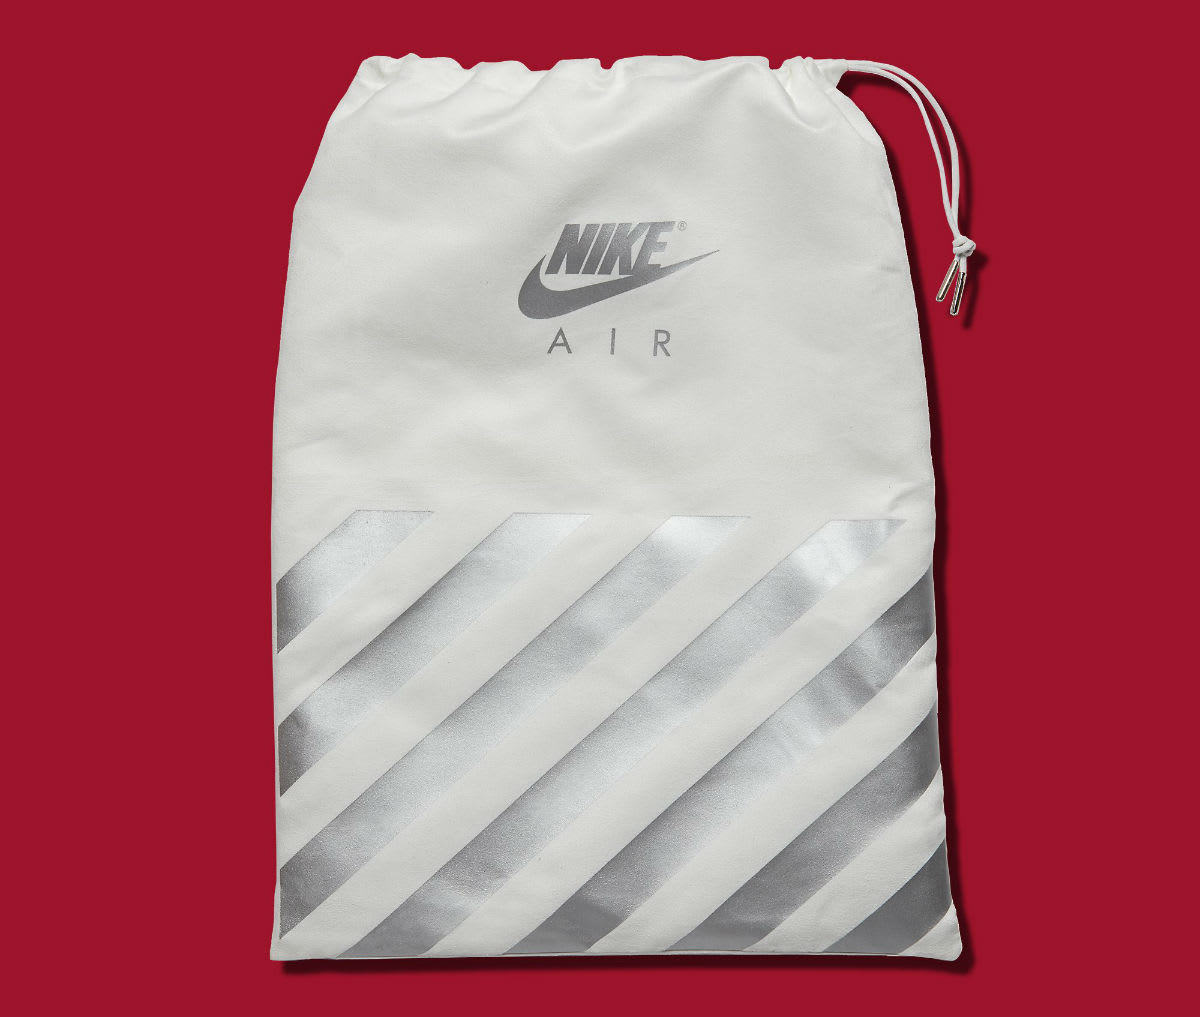 Nike Air Max 1 OG Red Anniversary Release Date Bag 908375-100